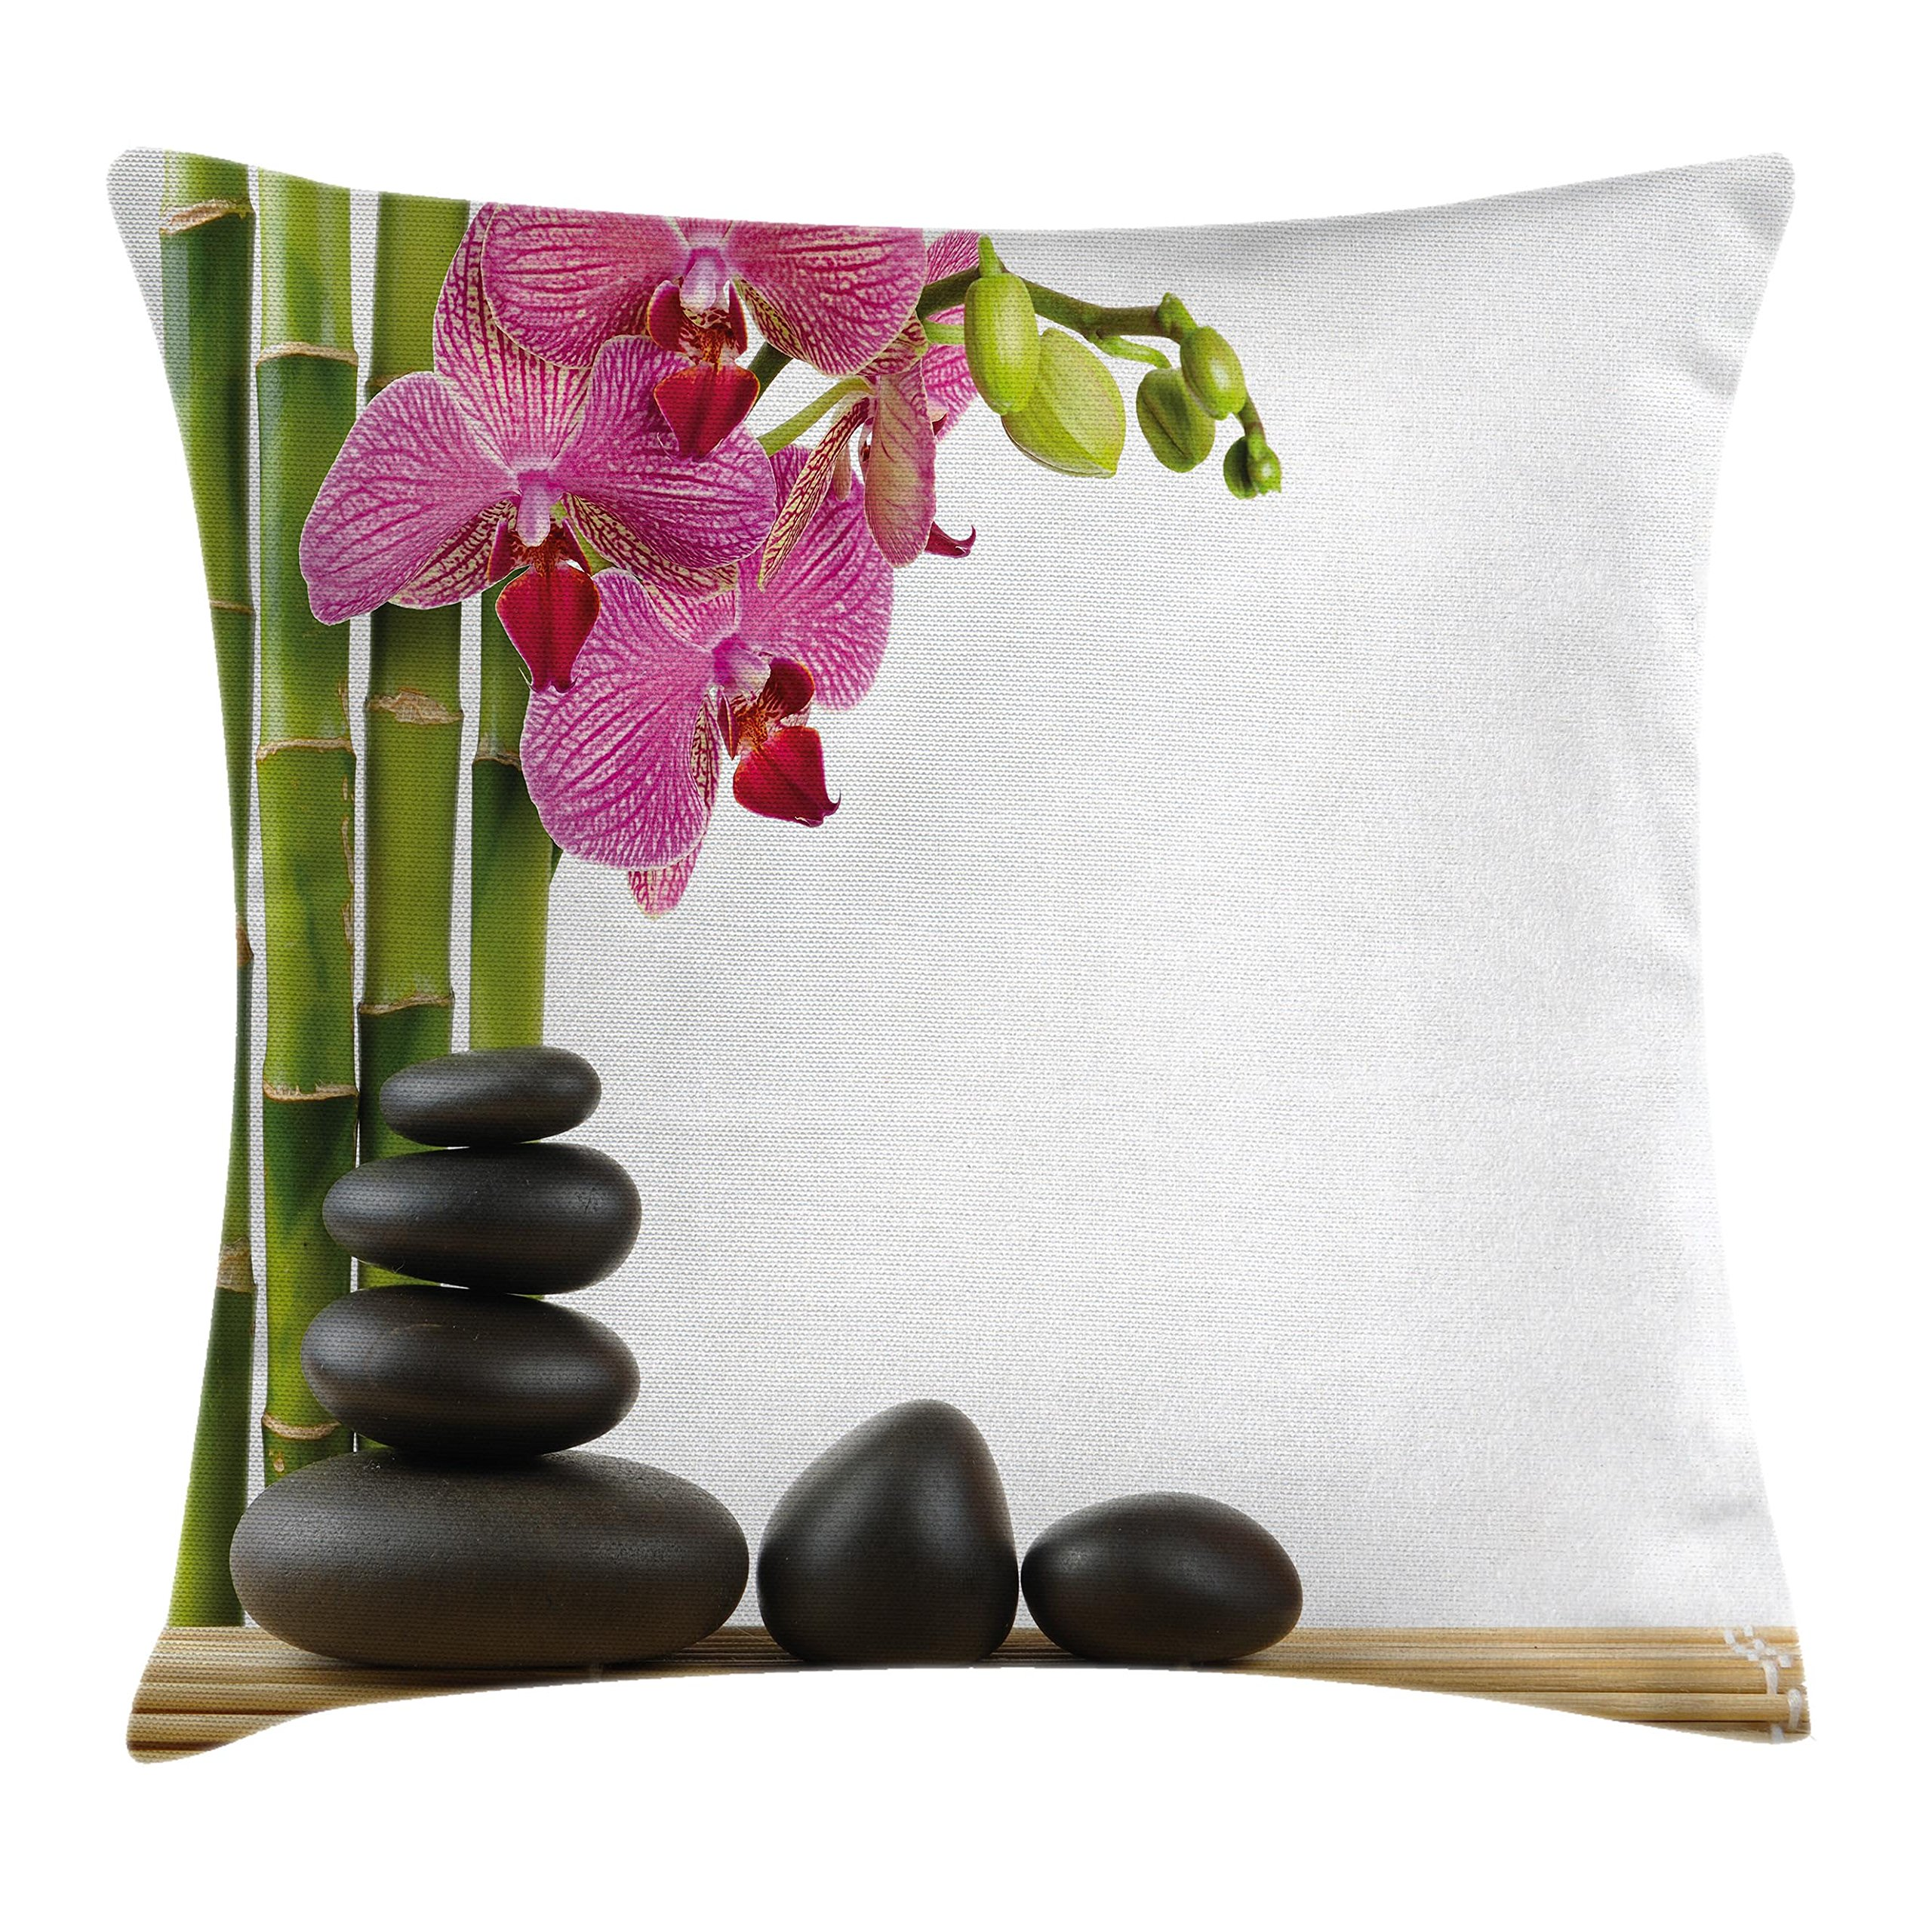 Ambesonne Spa Decor Throw Pillow Cushion Cover, Beautiful Pink Orchid with Bamboos and Black Hot Stone Massage Image, Decorative Square Accent Pillow Case, 18 X18 Inches, Pink Green and Black